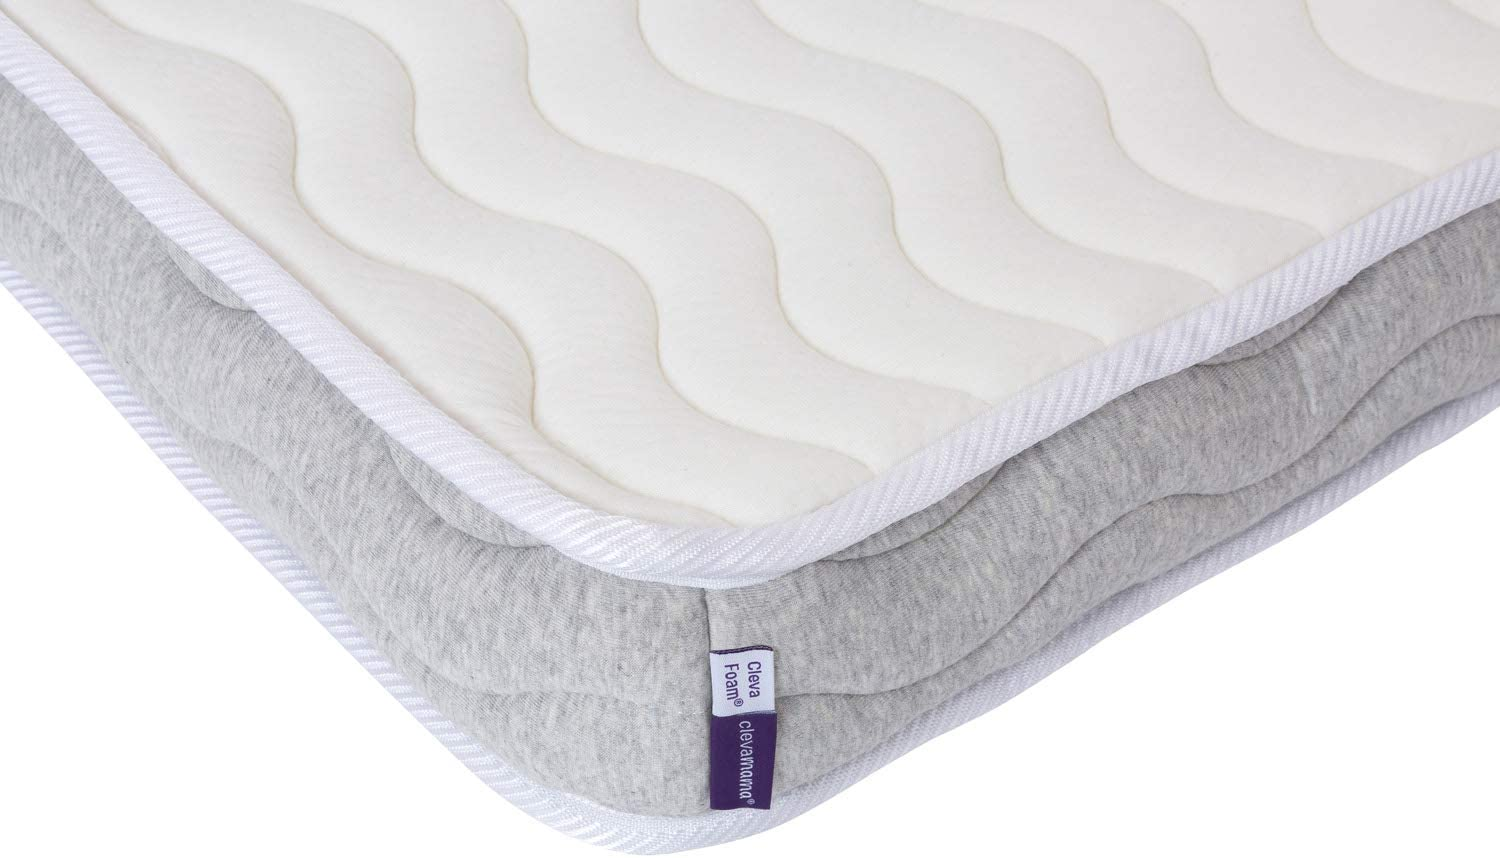 Clevamama Pocket Sprung Cot Mattress 60 x 120 cm